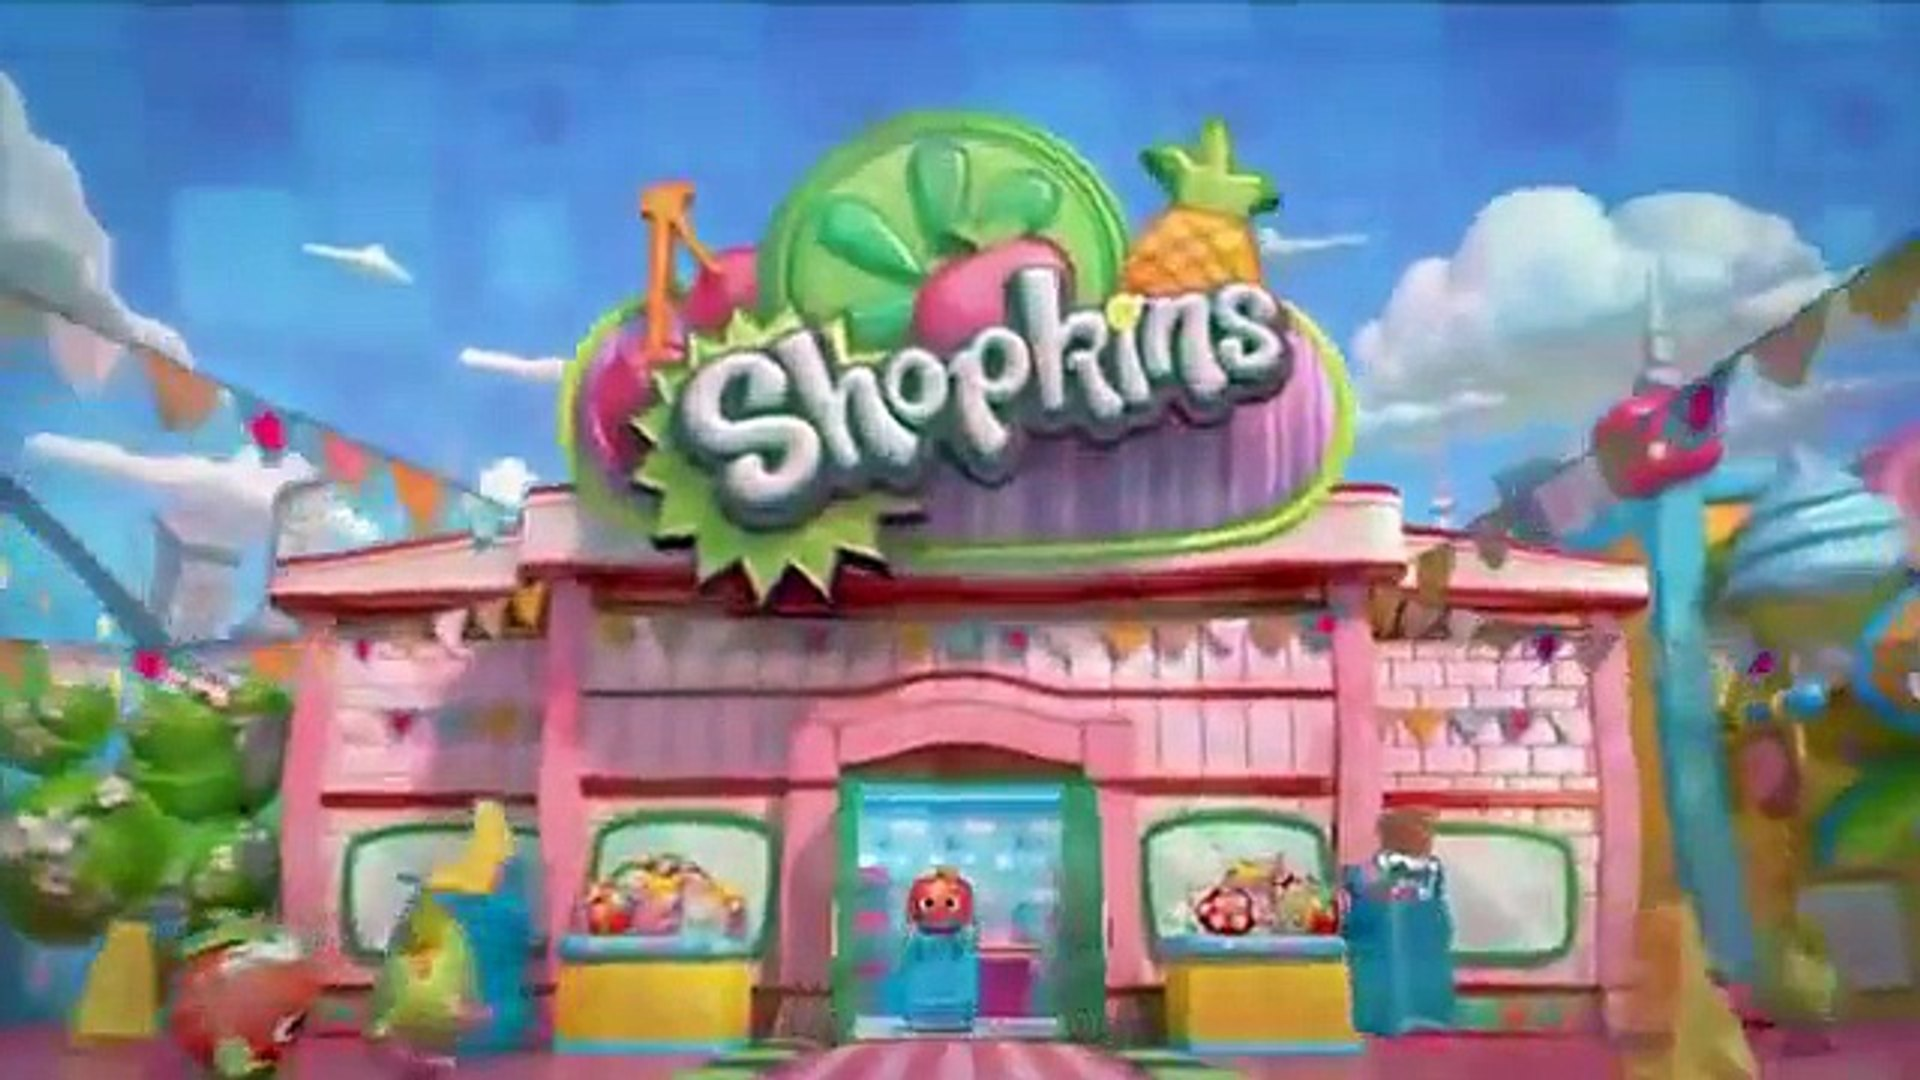 shopkins full HD - cartoon  - cartoon funny - cartoon Game - cartoon work - cartoon network